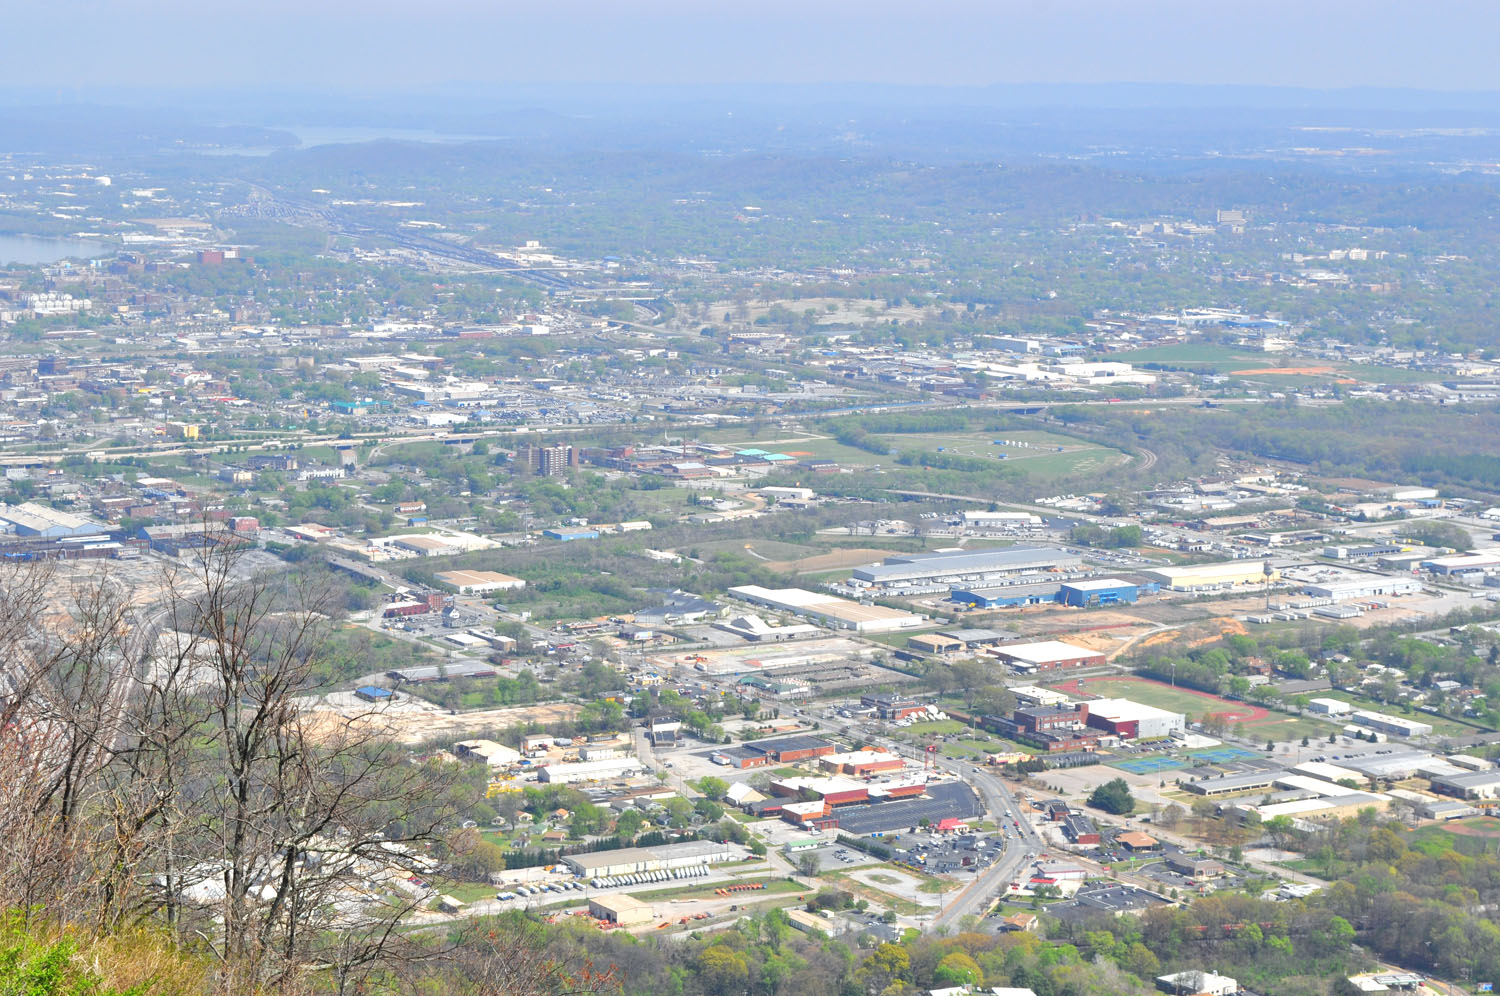 Chattanooga below